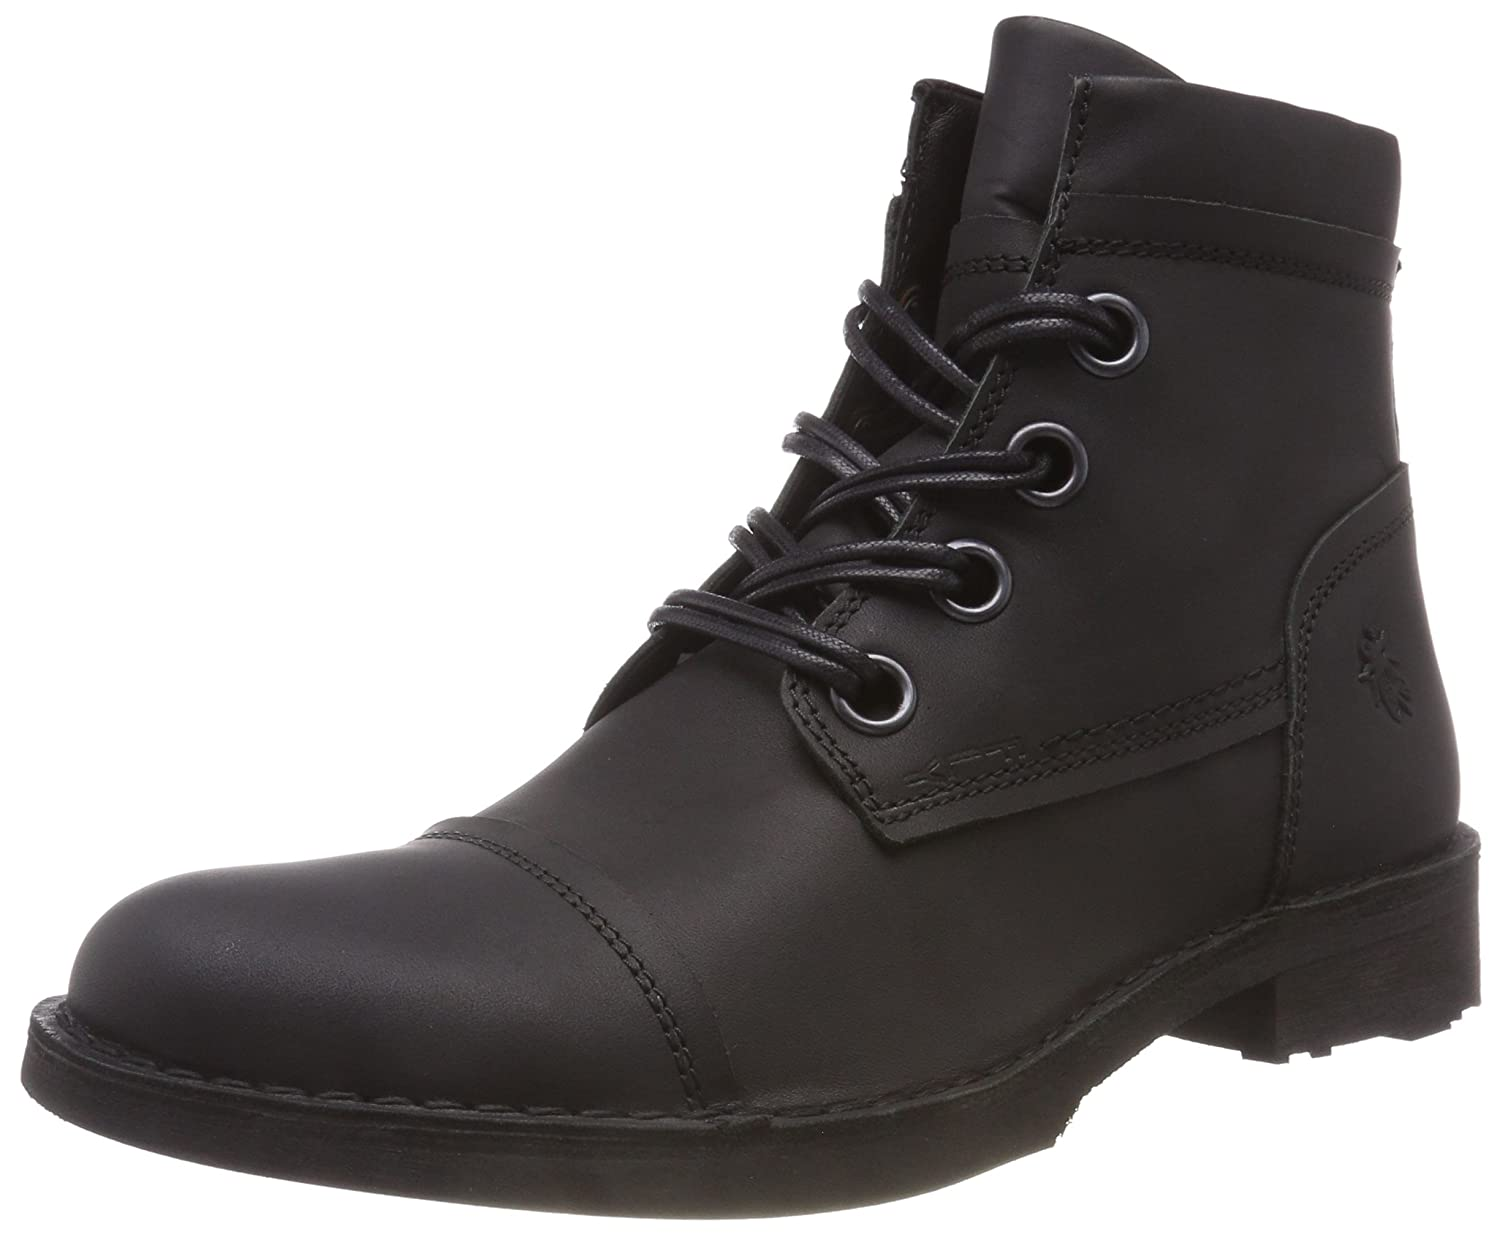 Fly London Rize976fly, Botas Clasicas para Hombre